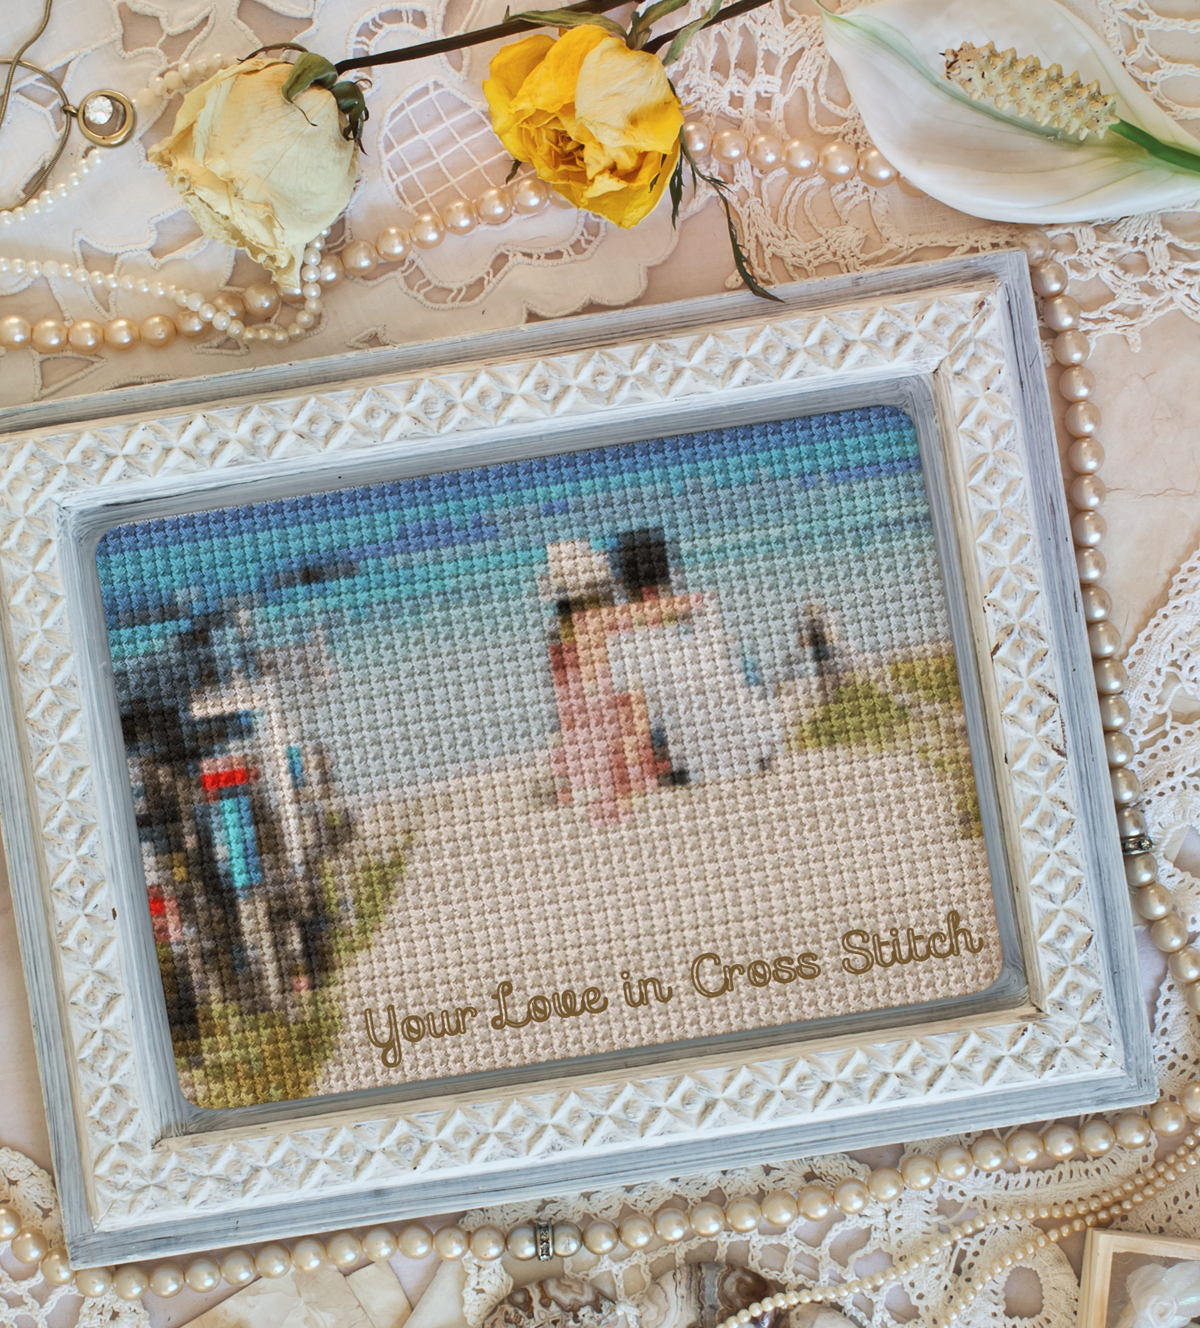 A photo of a couple made a part of collage with cross stitch online